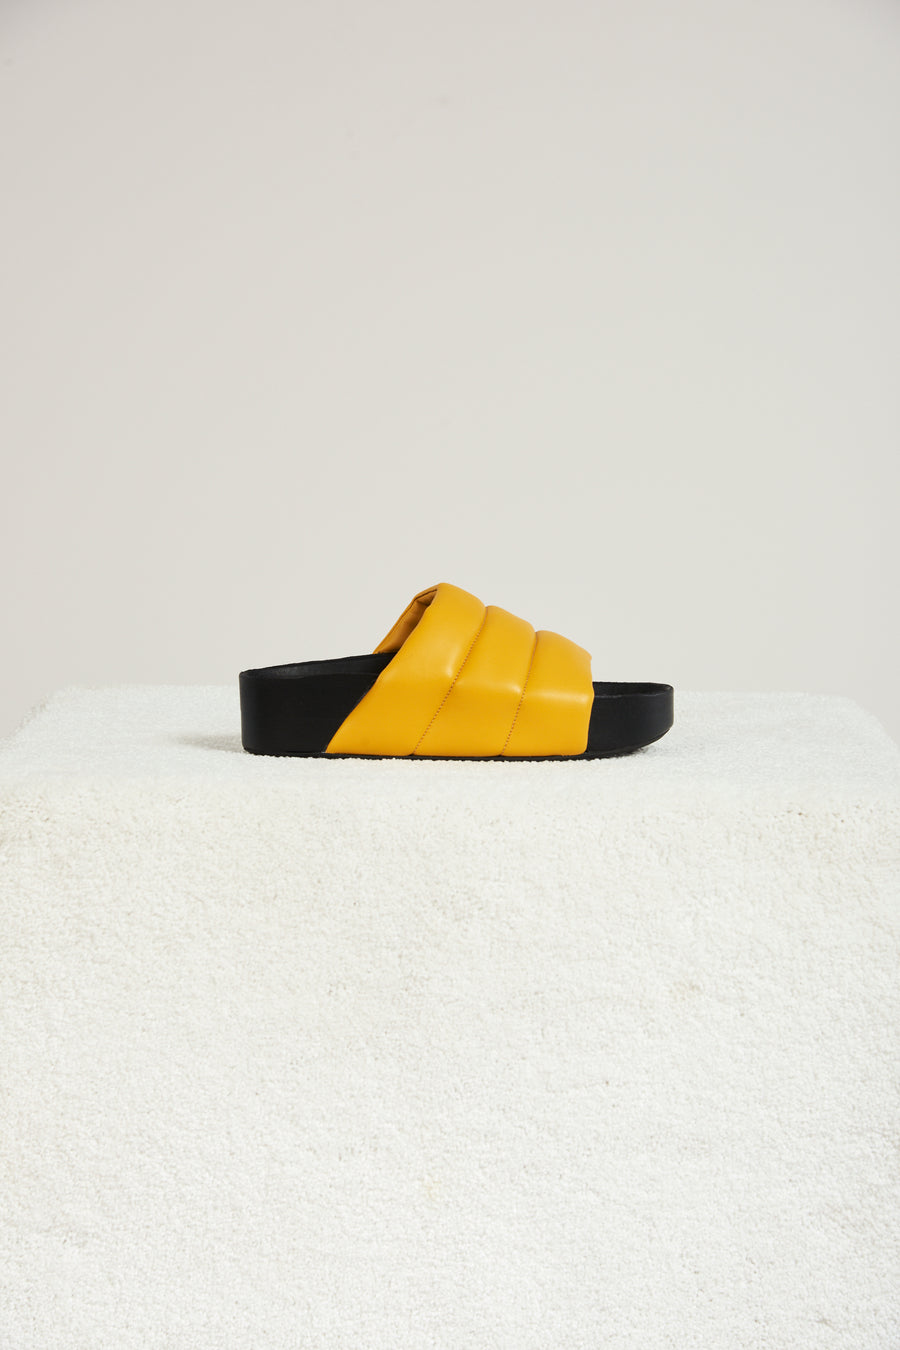 VEGAN LEATHER Dip Slide in Banana